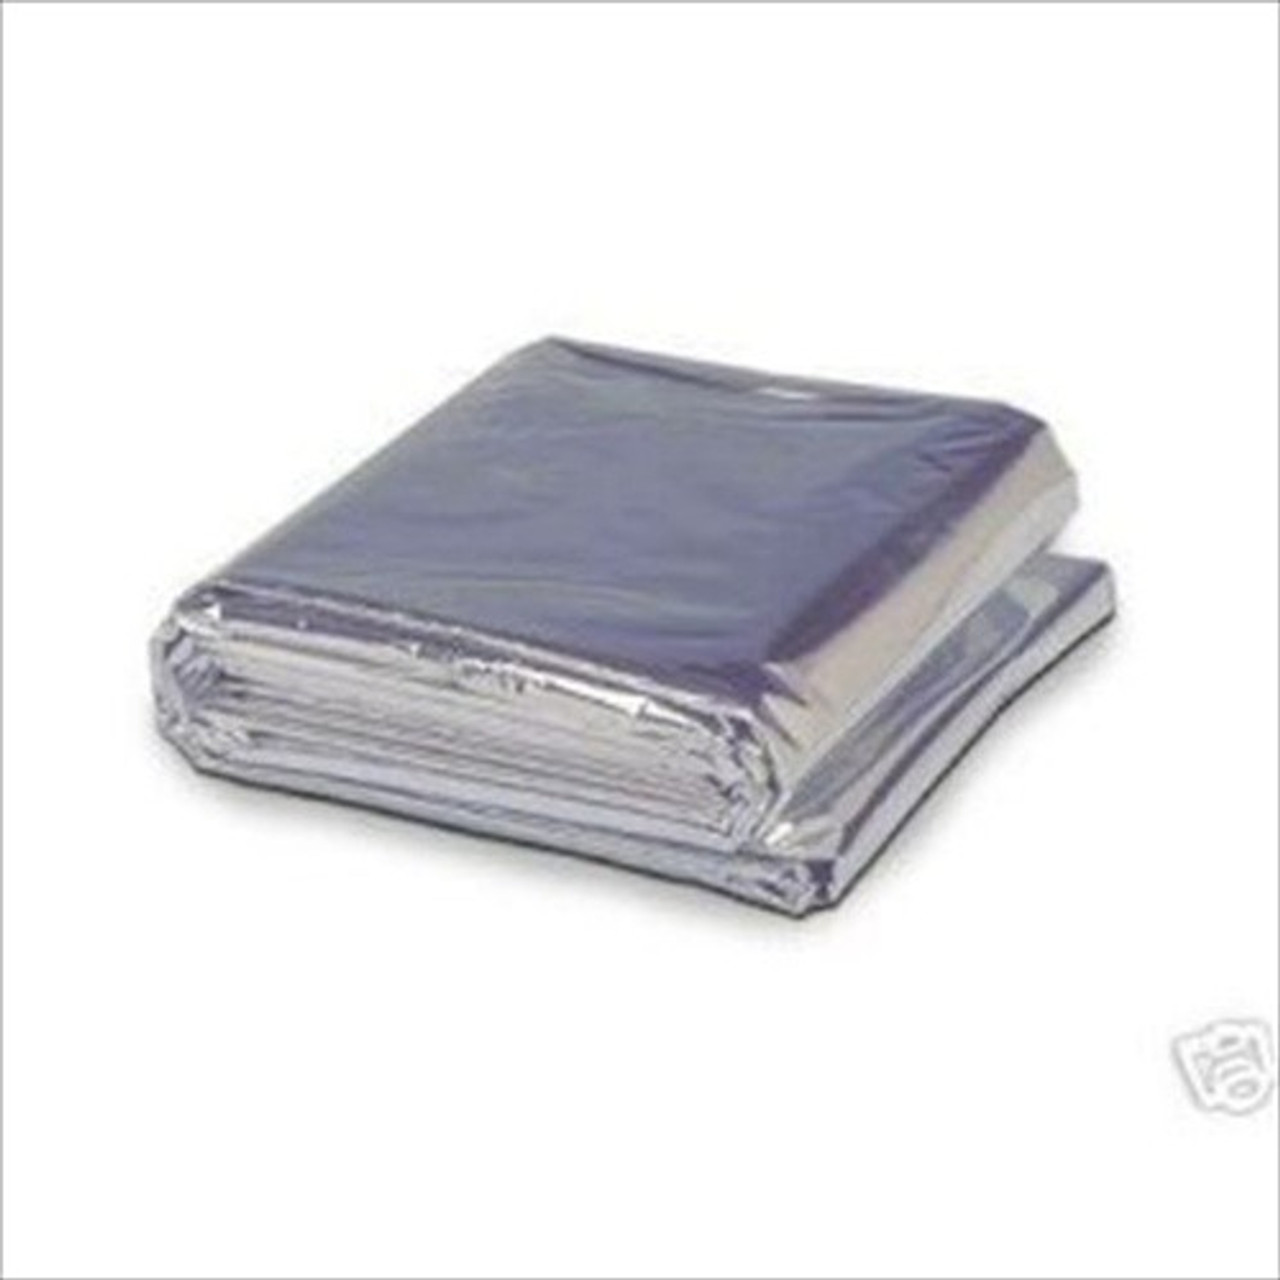 Foil (Mylar) Thermal Emergency Blanket